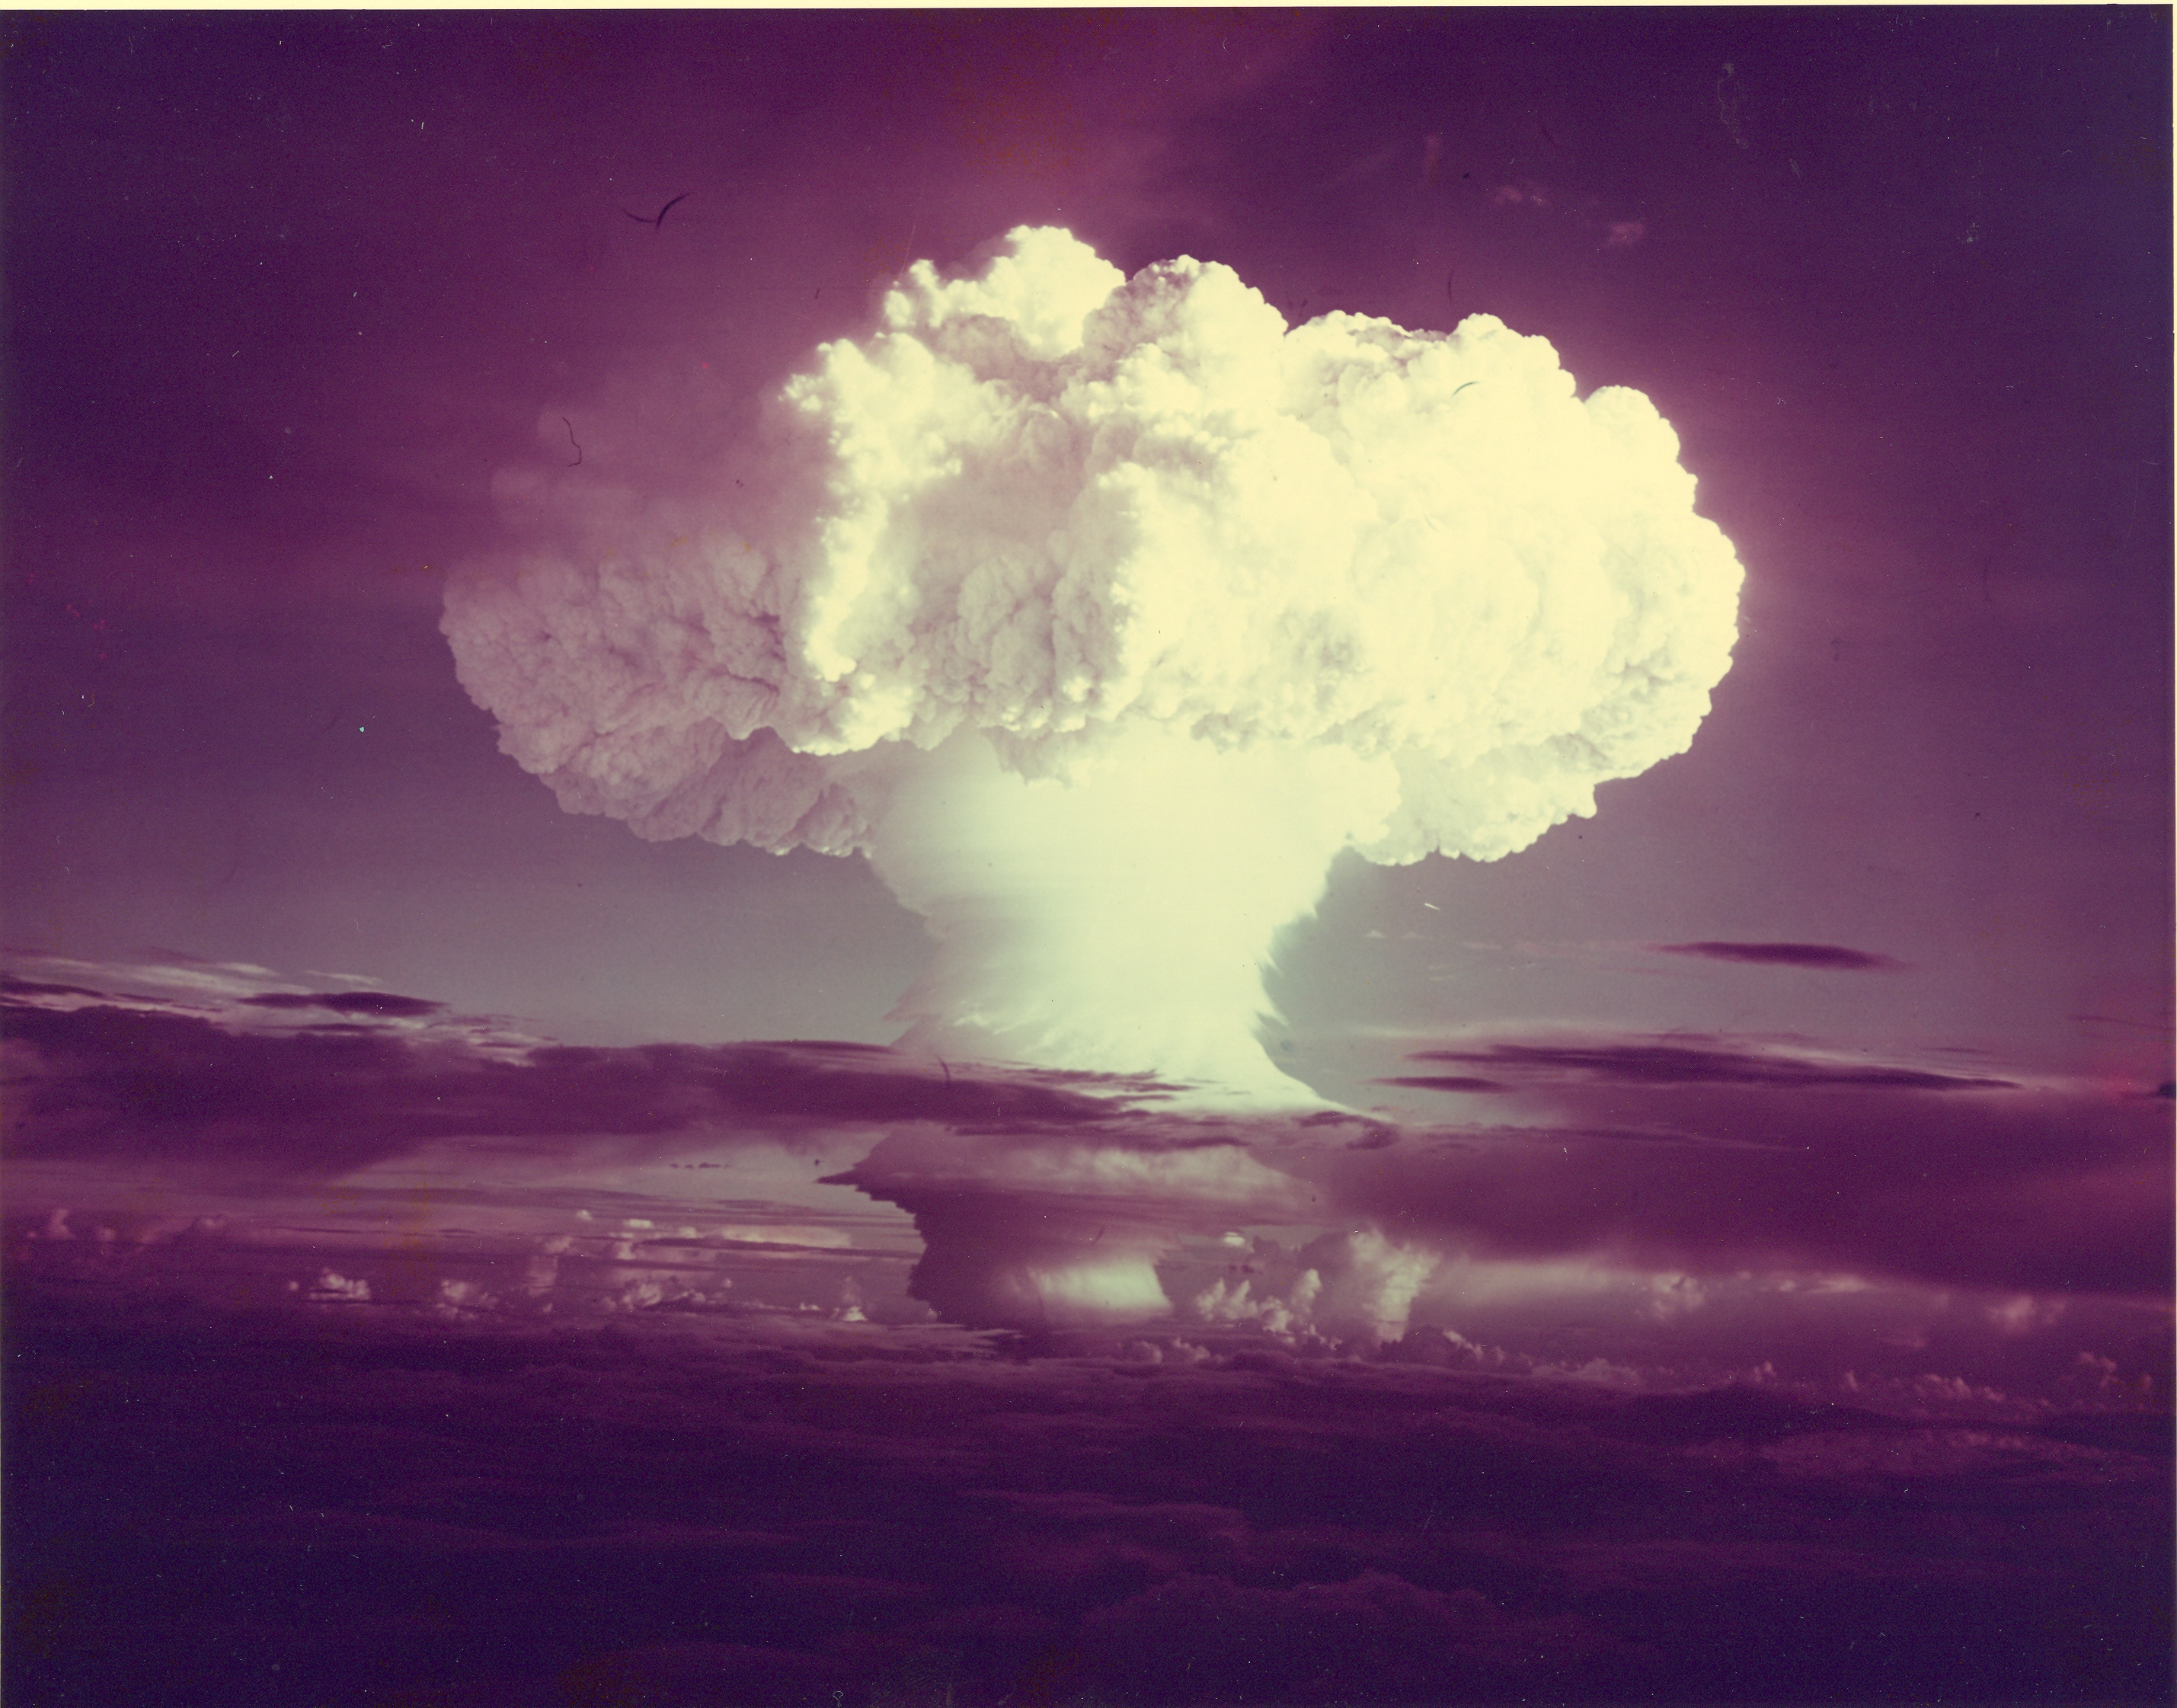 A mushroom cloud forms after the first U.S. test of a thermonuclear device, code named Ivy Mike, in November 1952